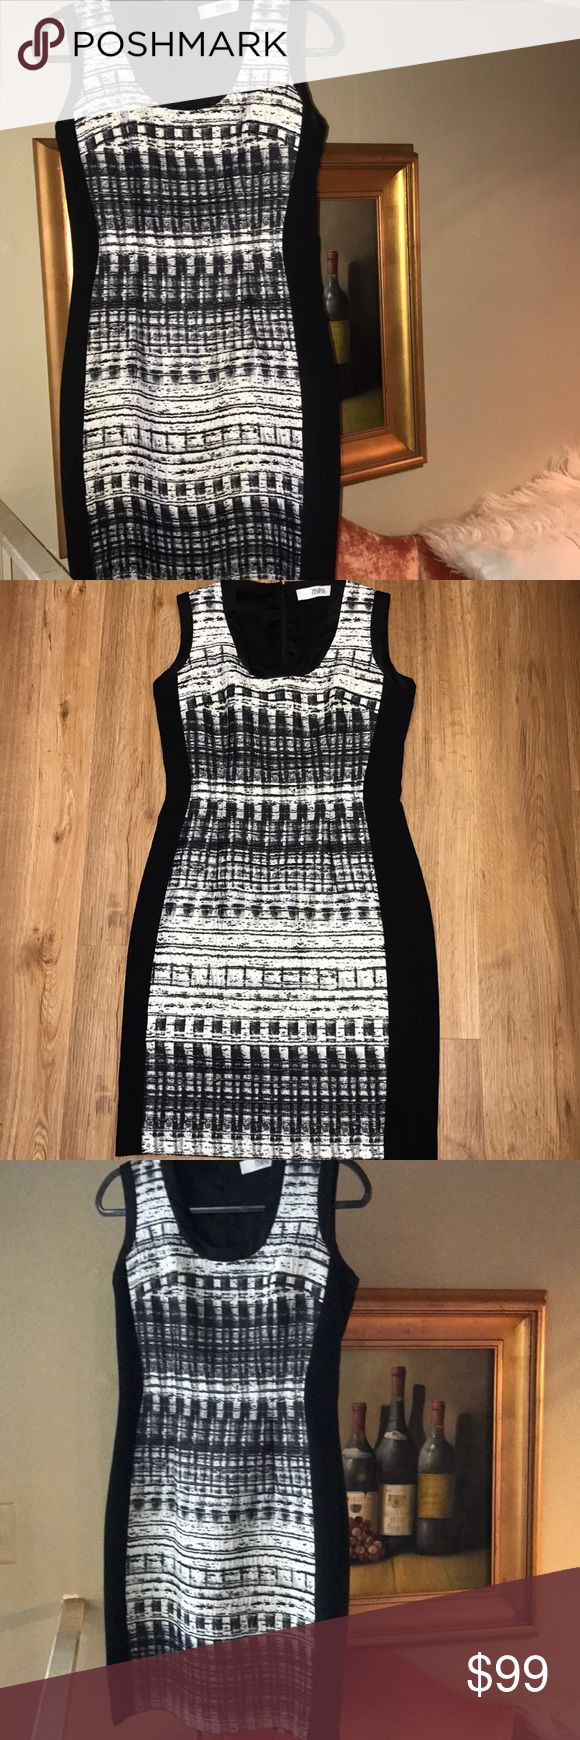 PRABAL GURUNG dress size 6 Beautiful dress in size 6 Excellent preowned condition Prabal Gurung Dresses Midi